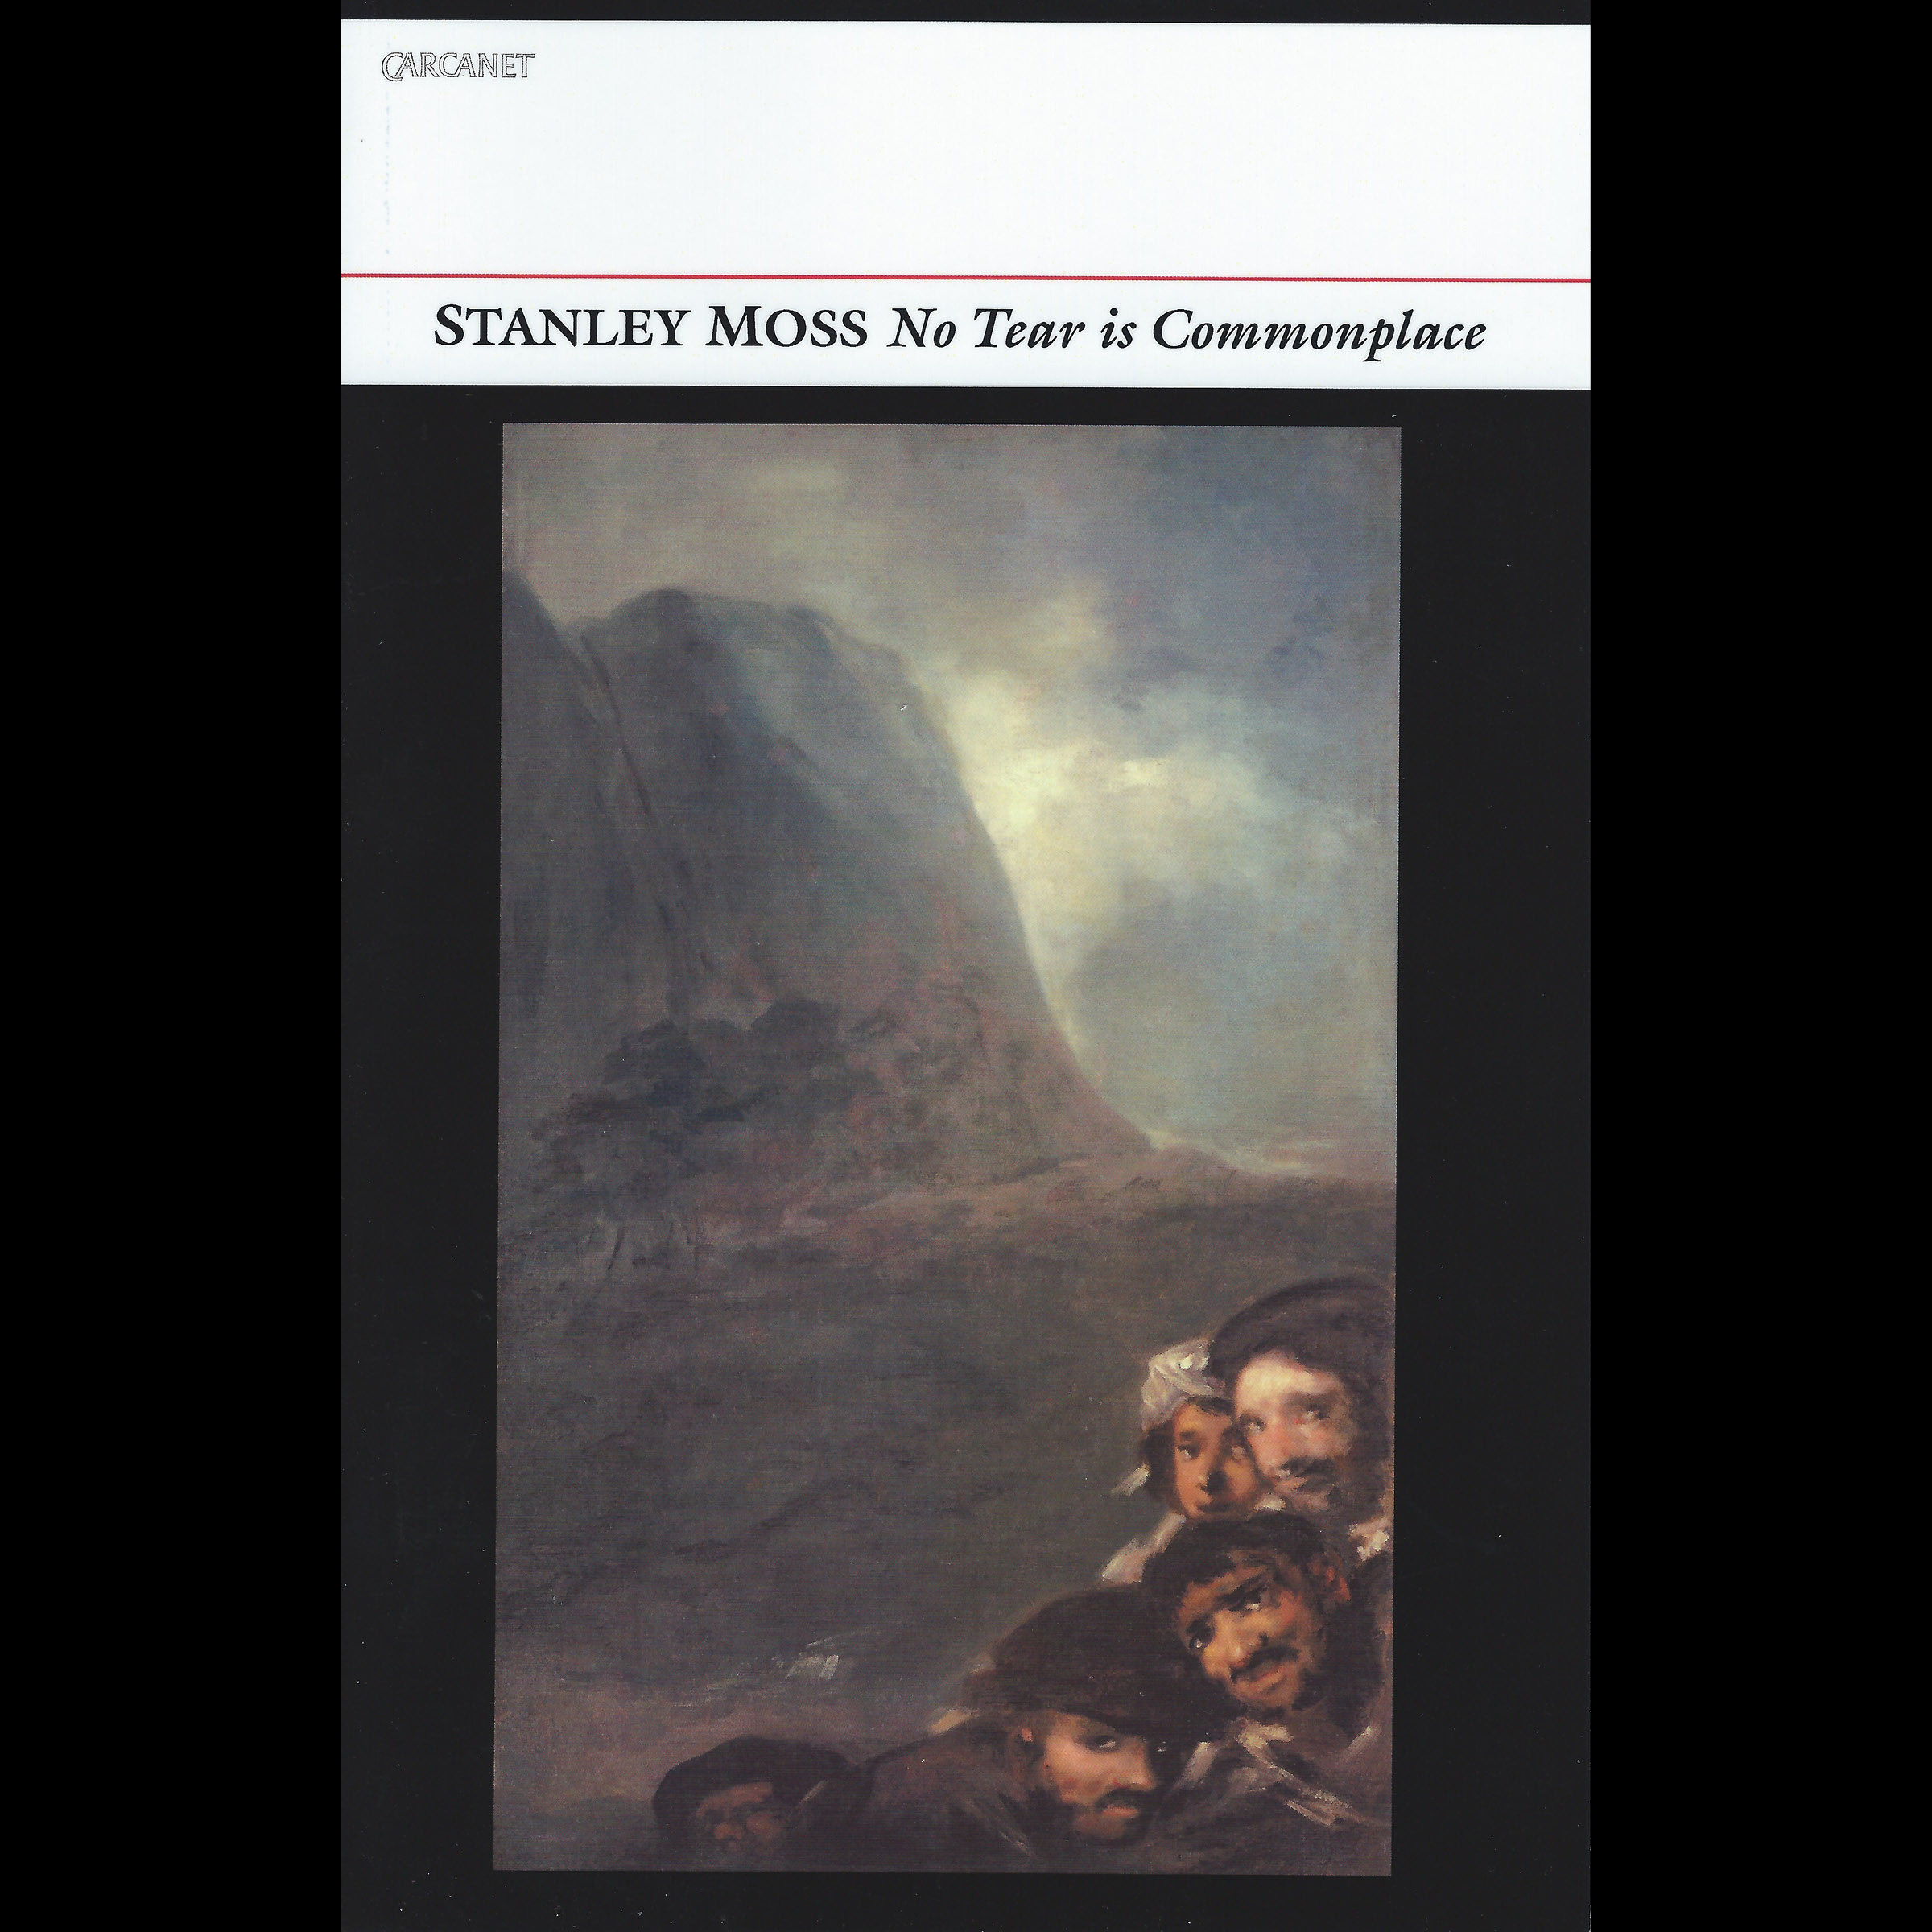 No Tear Is Commonplace (Carcanet, 2014)